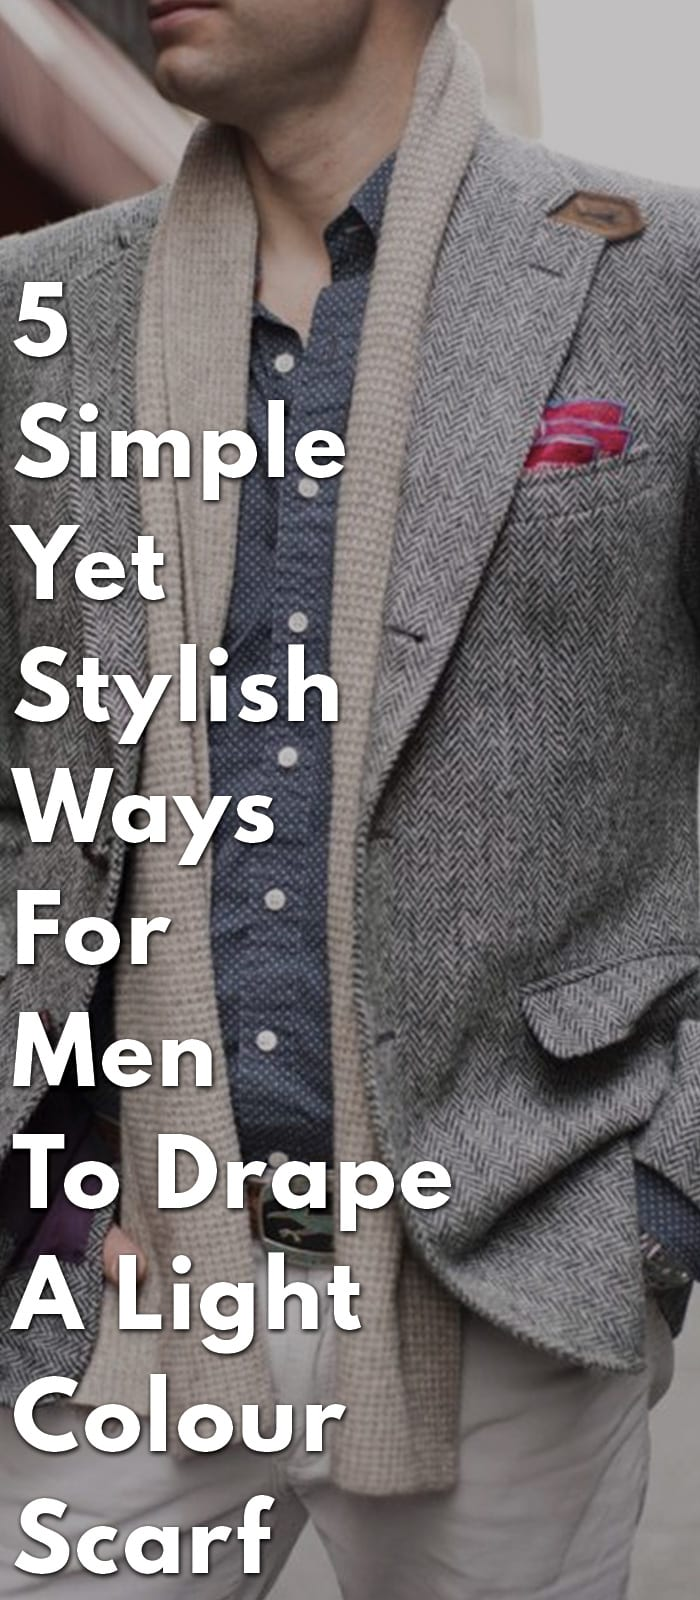 5-Simple-Yet-Stylish-Ways-For-Men-To-Drape-A-Light-Colour-Scarf